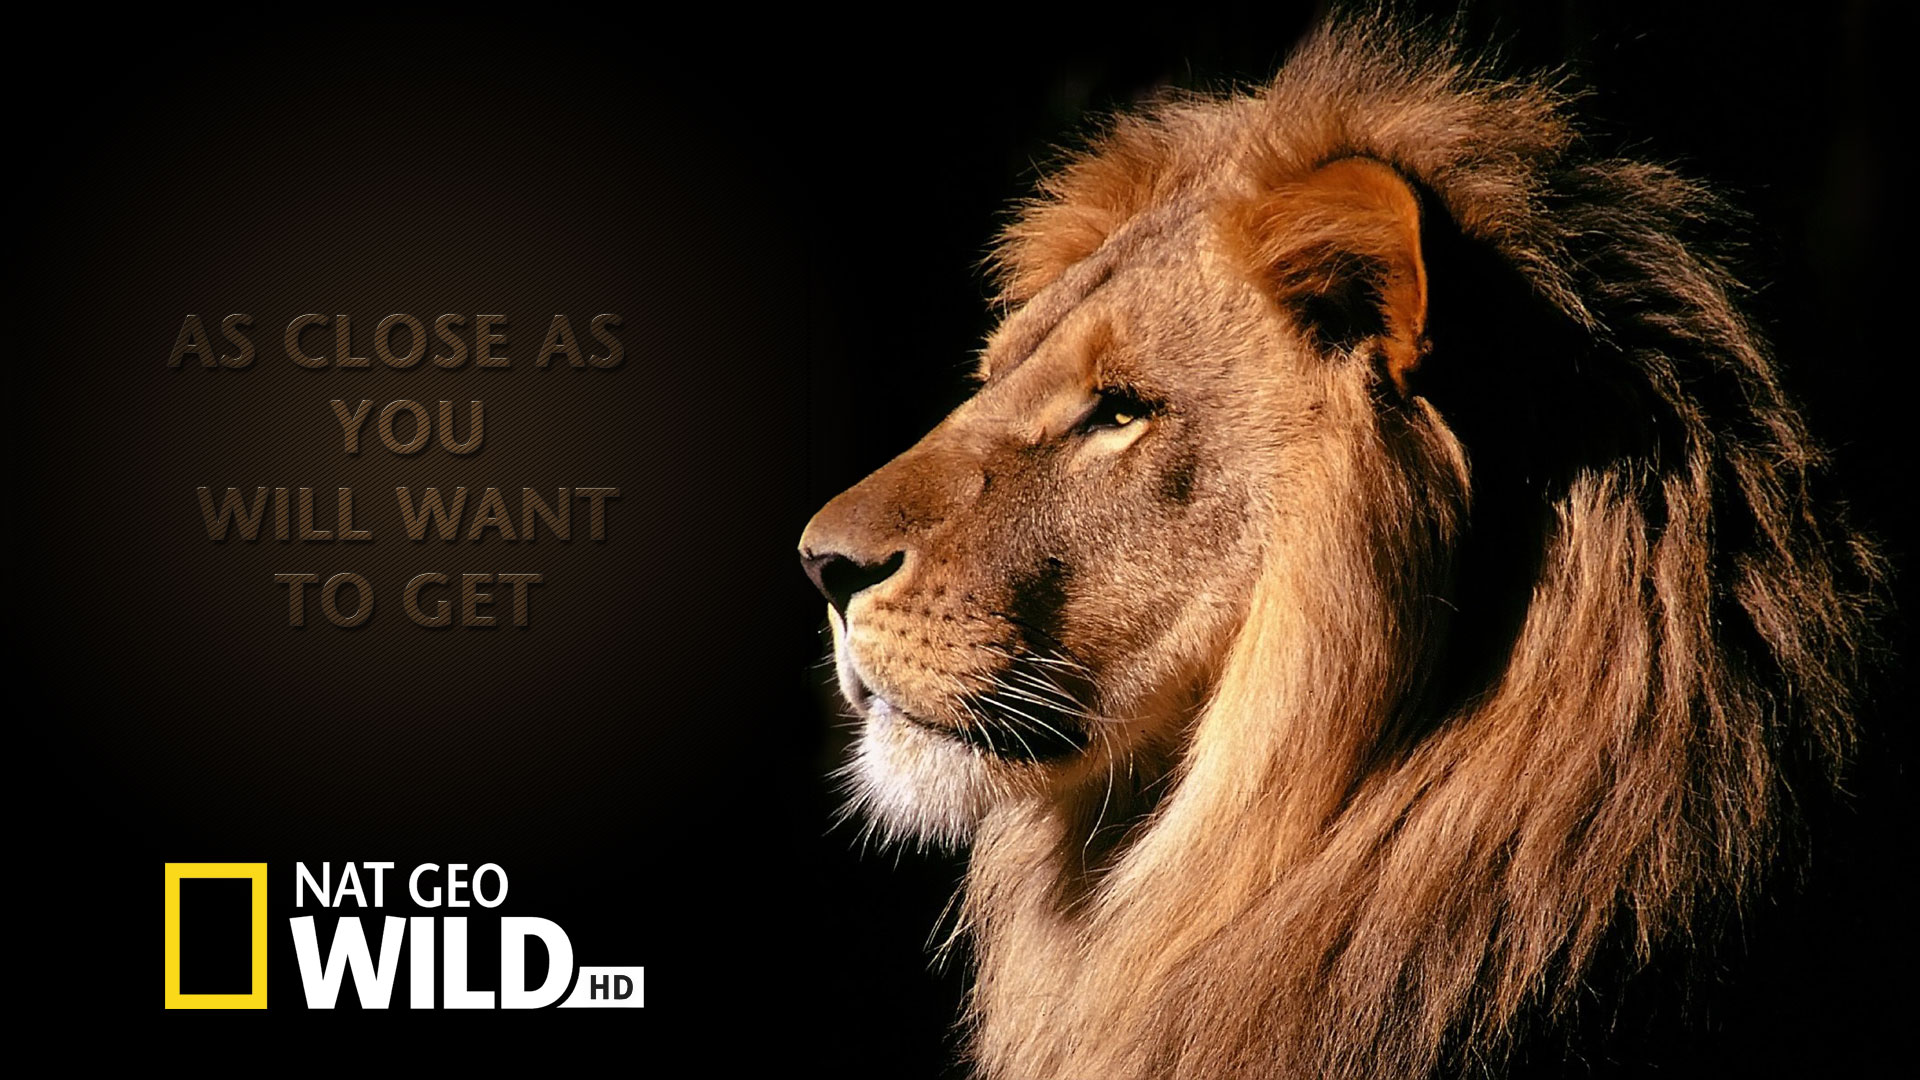 Nat geo wild wallpaper hd full hd pictures - National geographic wild wallpapers ...